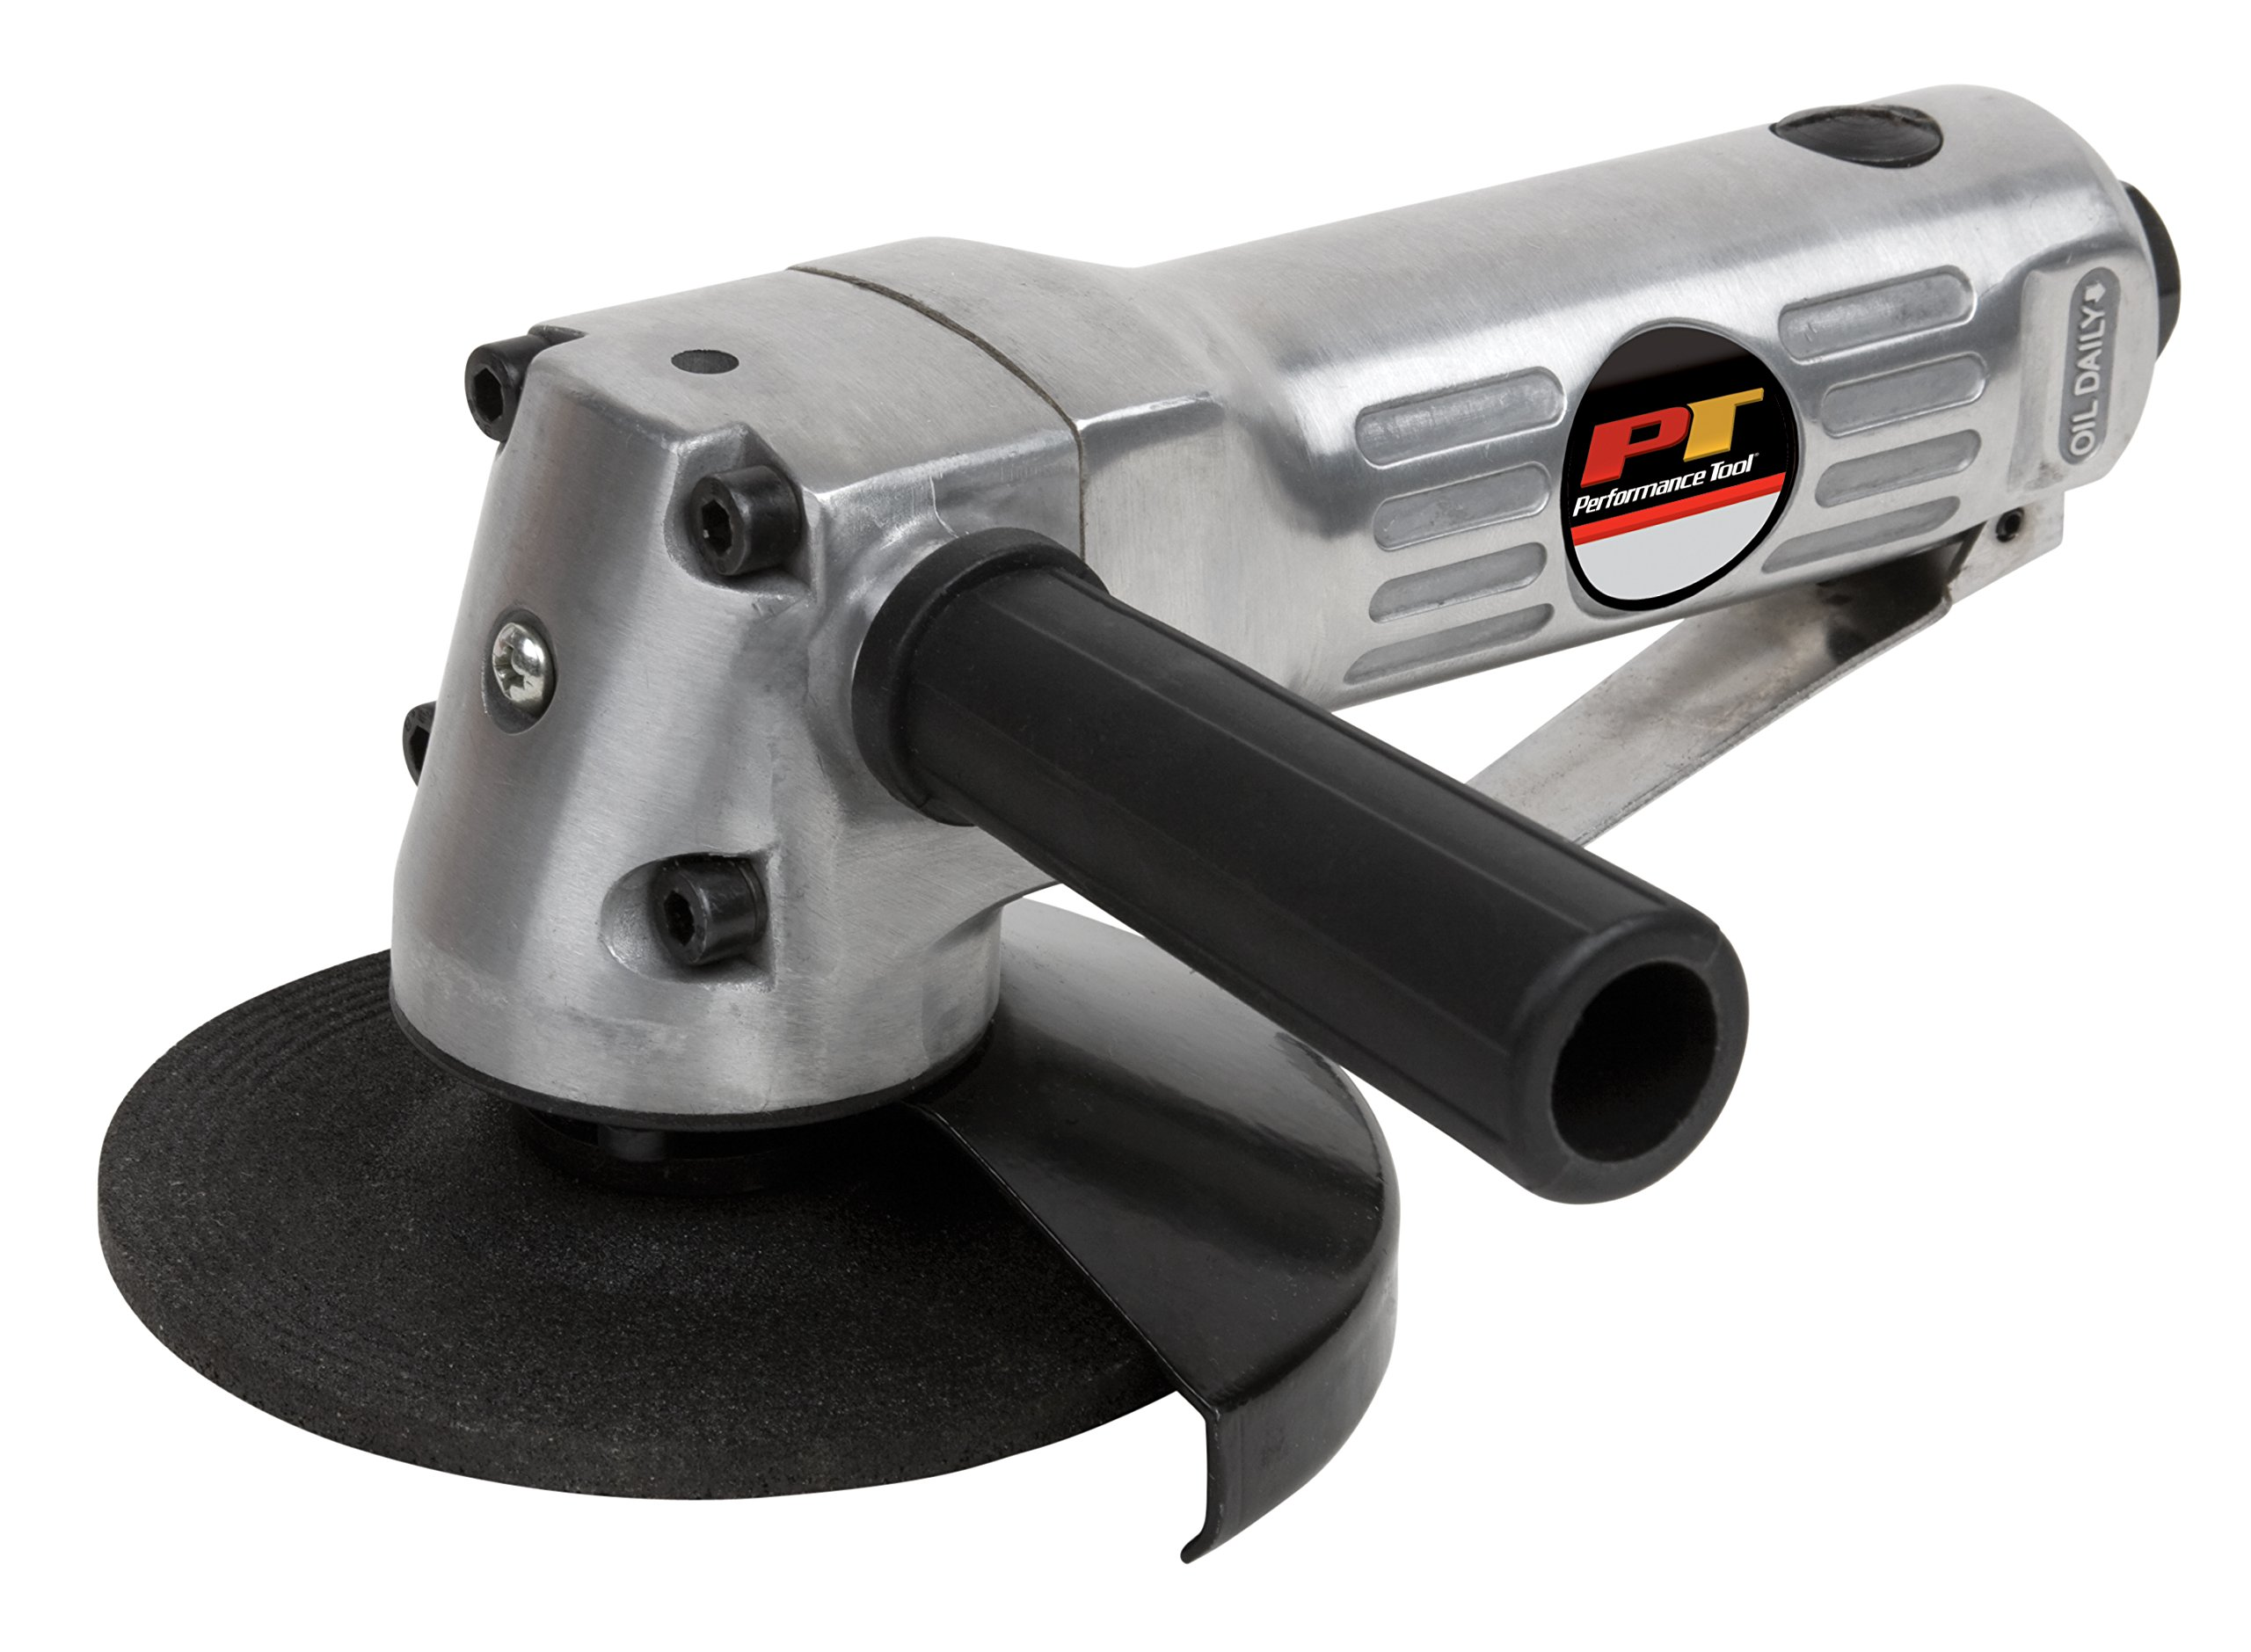 Performance Tool M658 Heavy Duty Angle Grinder, 4''